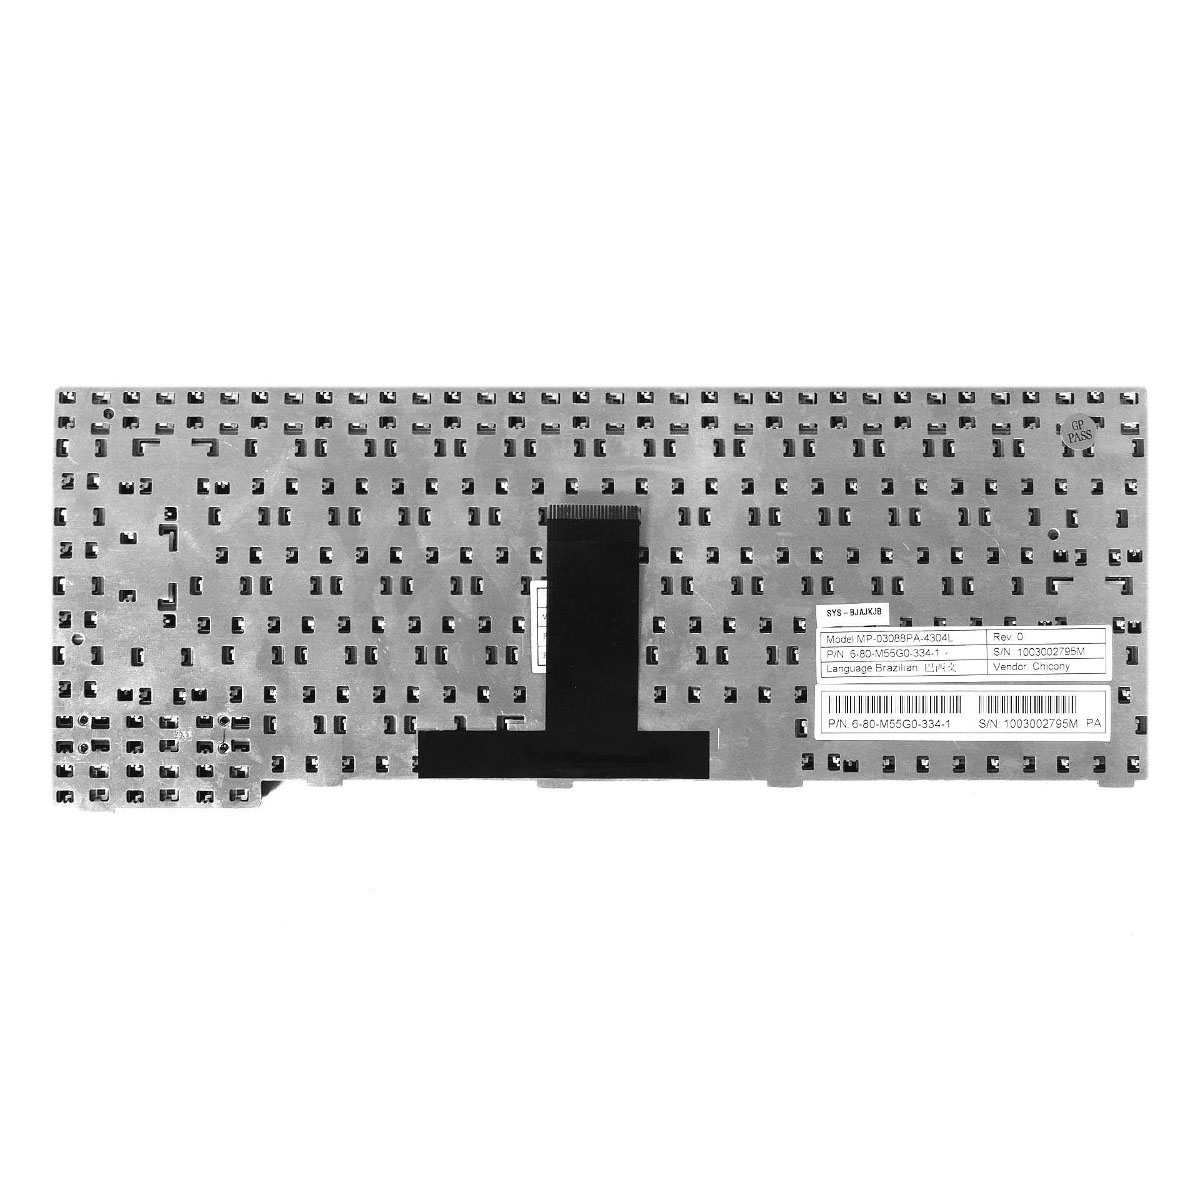 Teclado Notebook Positivo Pn: MP-03088PA-4304L / 6-80-M55G0-334-1